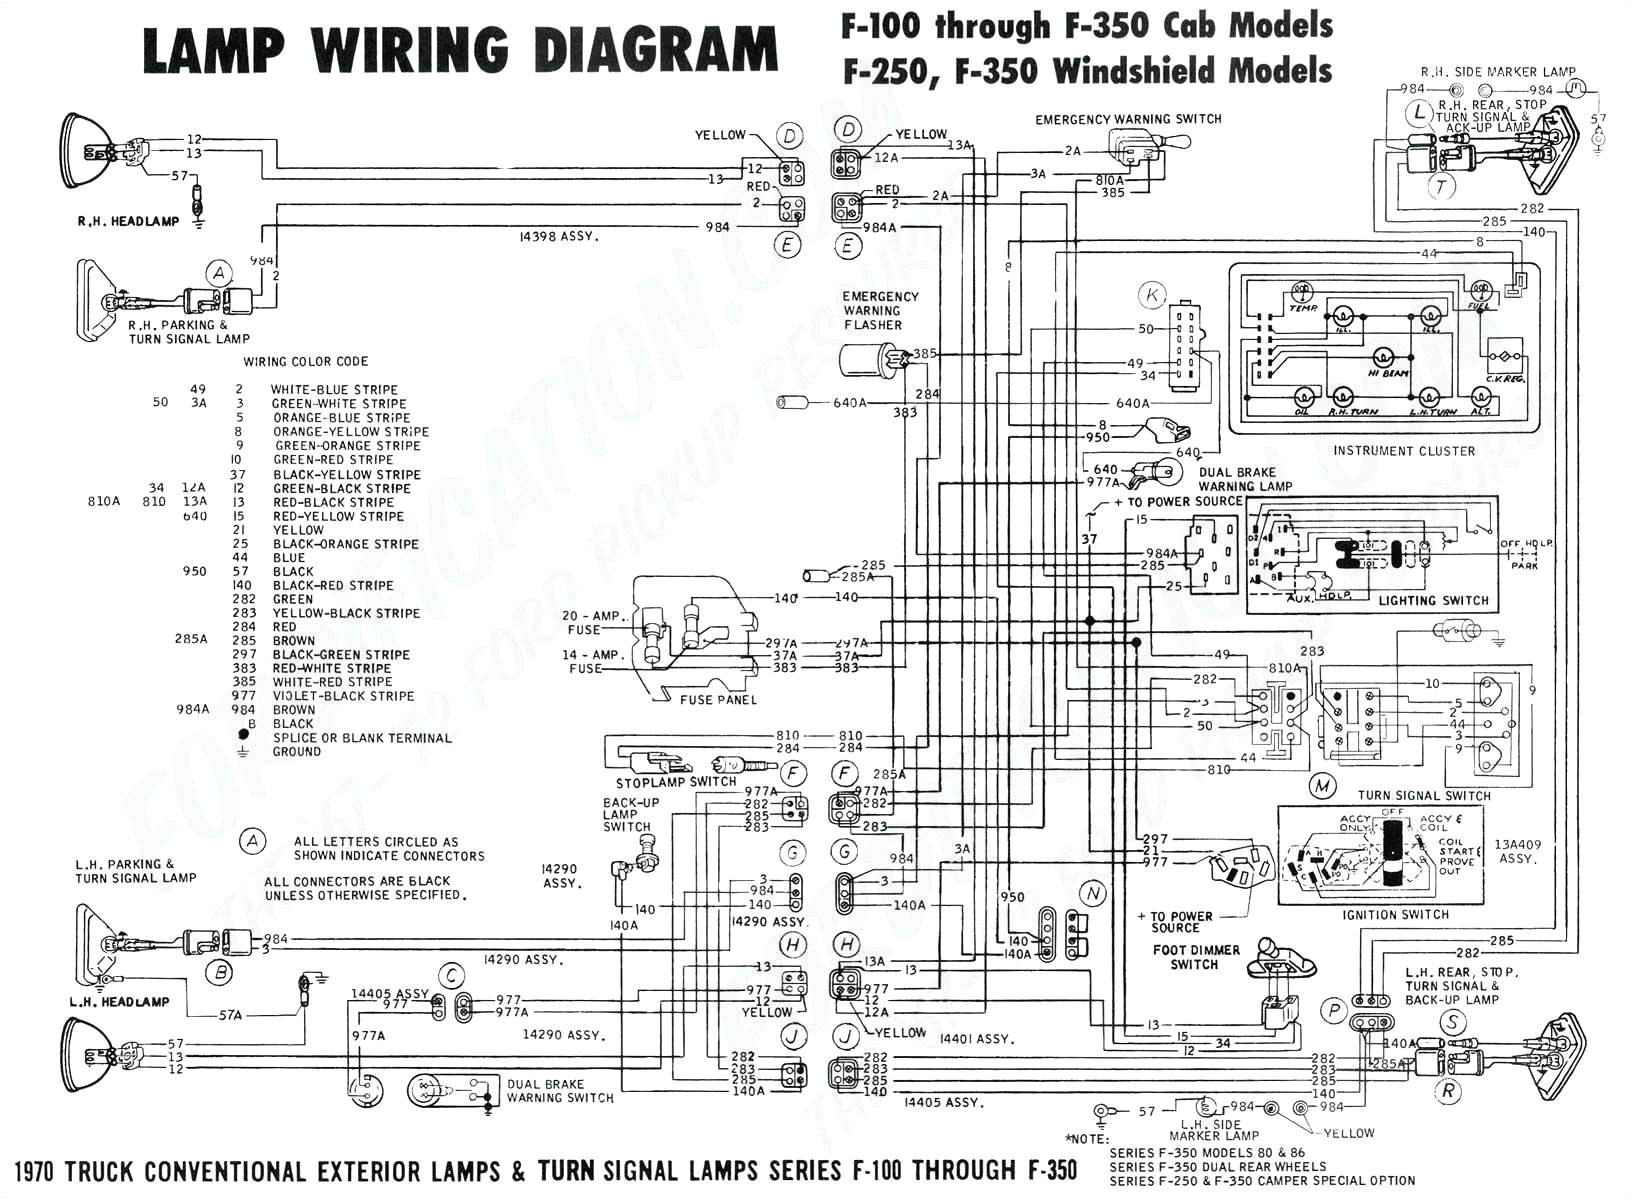 c2 wiring schematic wiring diagram wiring diagrams c2 ab myrons mopeds